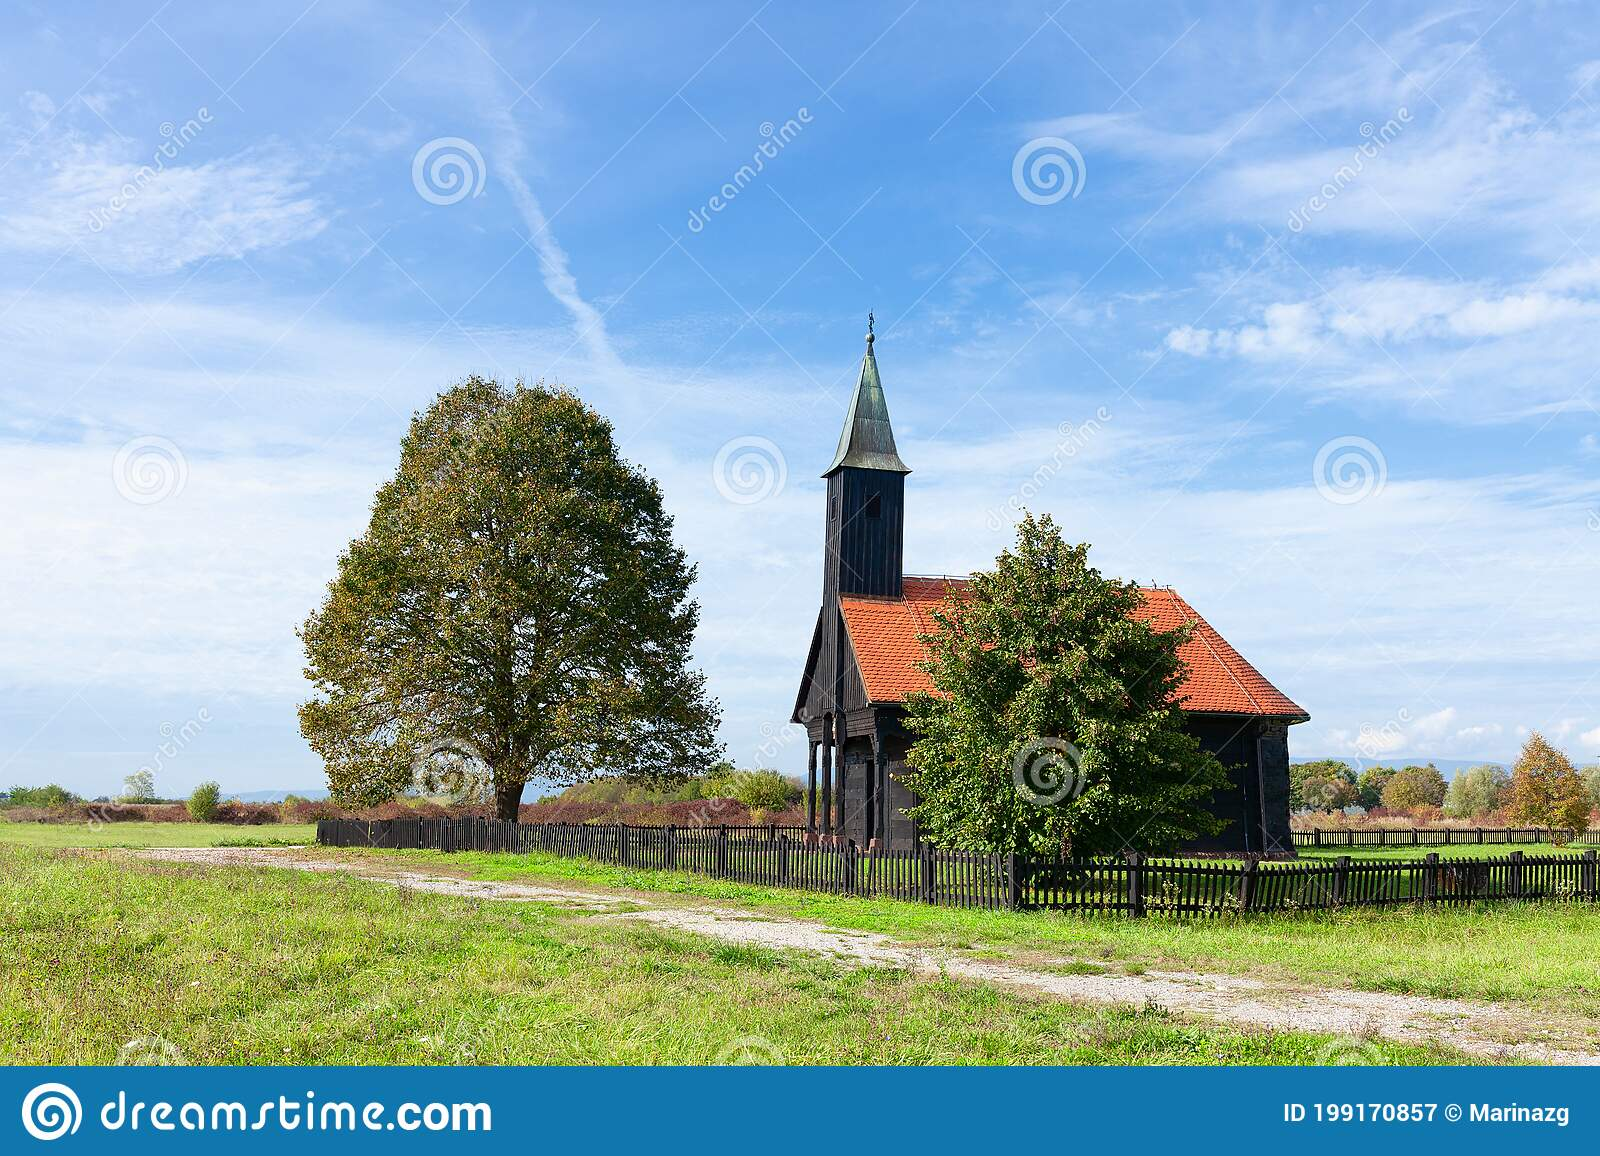 small black wooden church in the countryside with black picket fence red tile roof stock image image of scene field 199170857